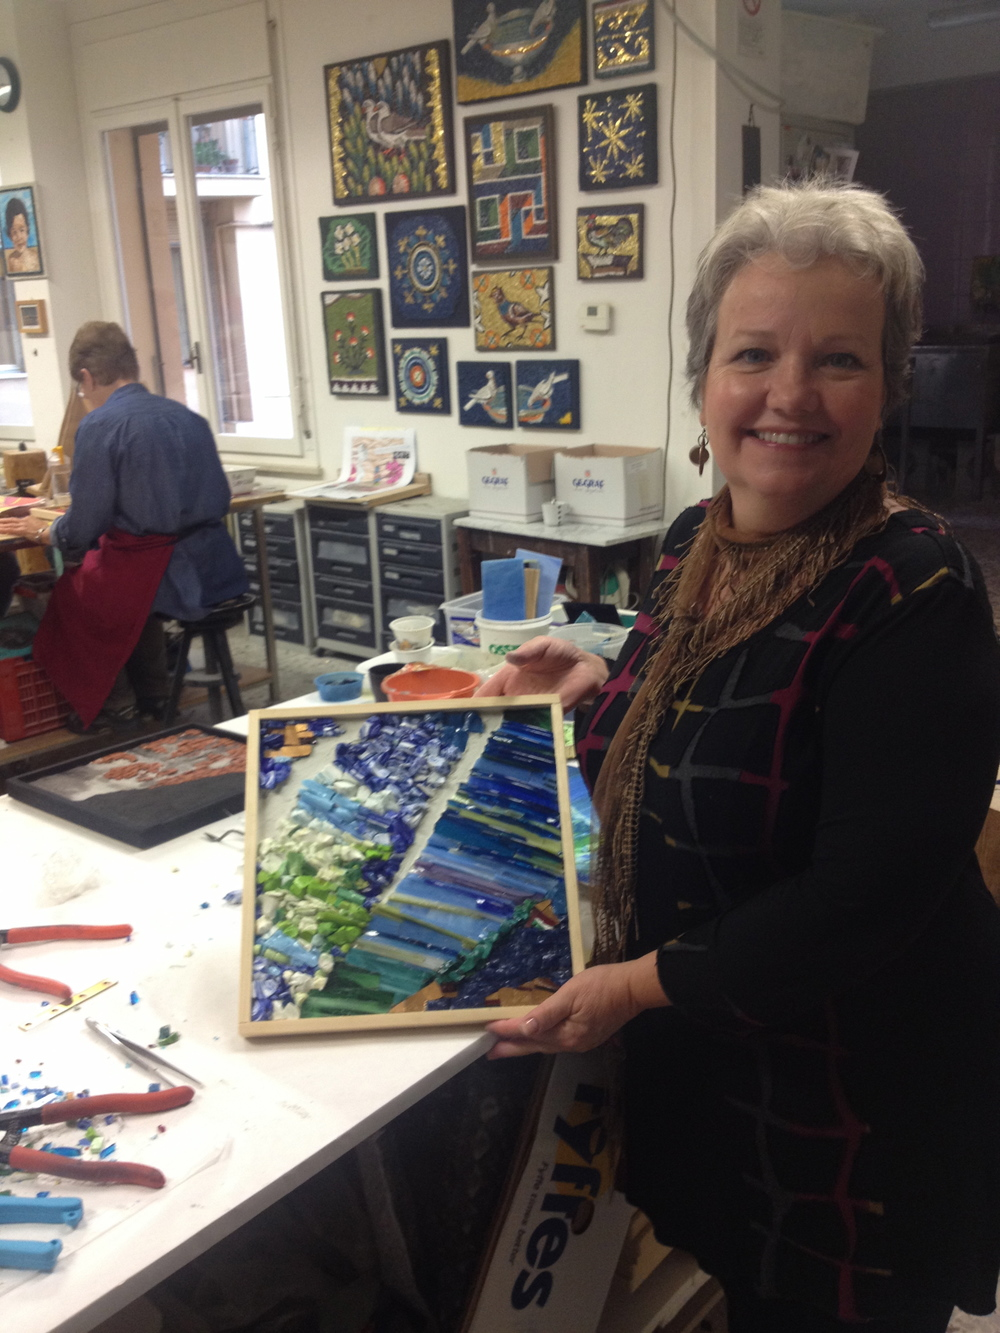 Two-time tour participant Margy Cottingham shows the work created from her own painting during the KokoMosaico workshop in October, 2015.